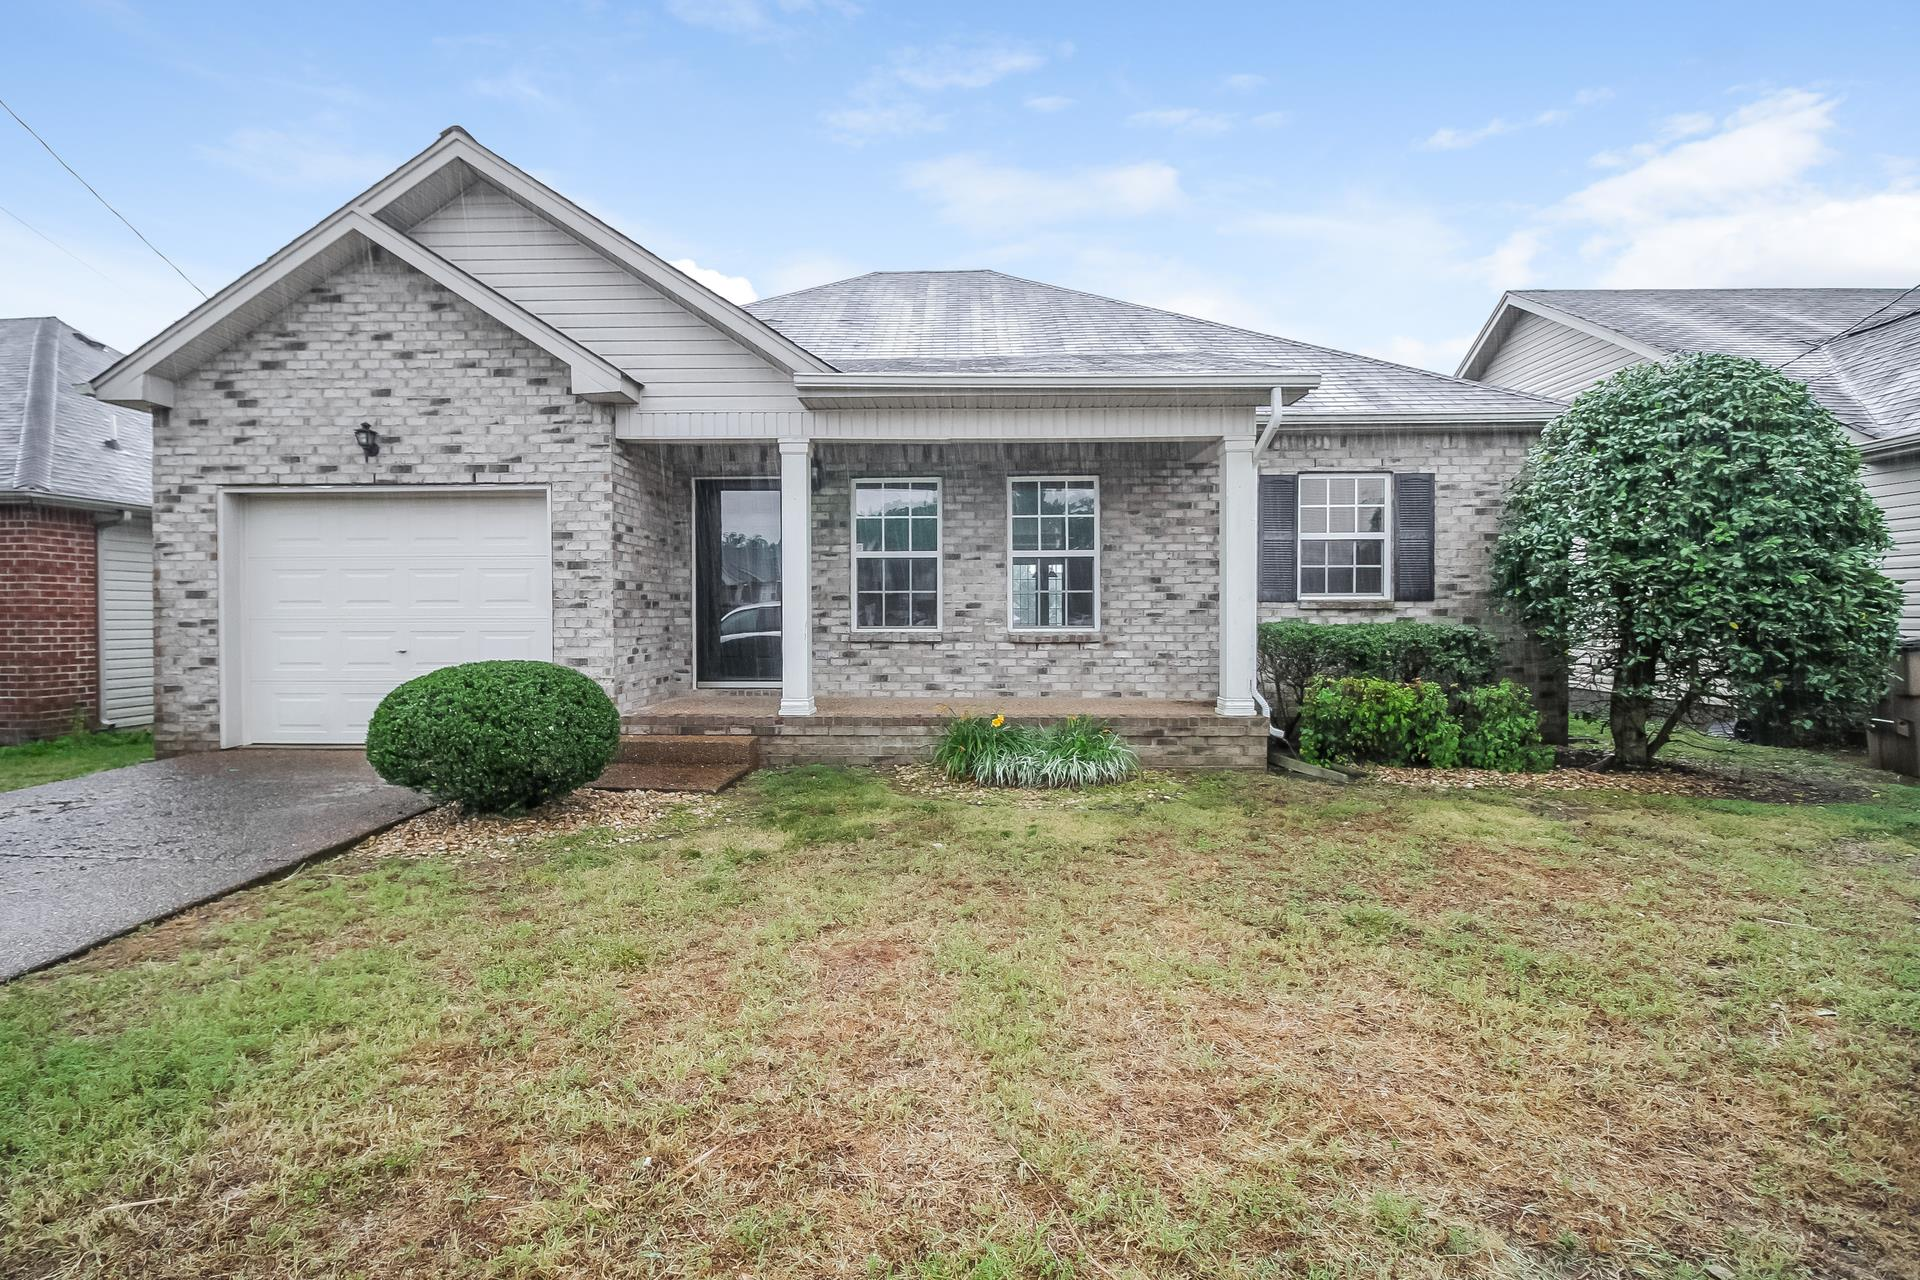 1967 Port James Cir, Nashville-Antioch in Davidson County County, TN 37013 Home for Sale